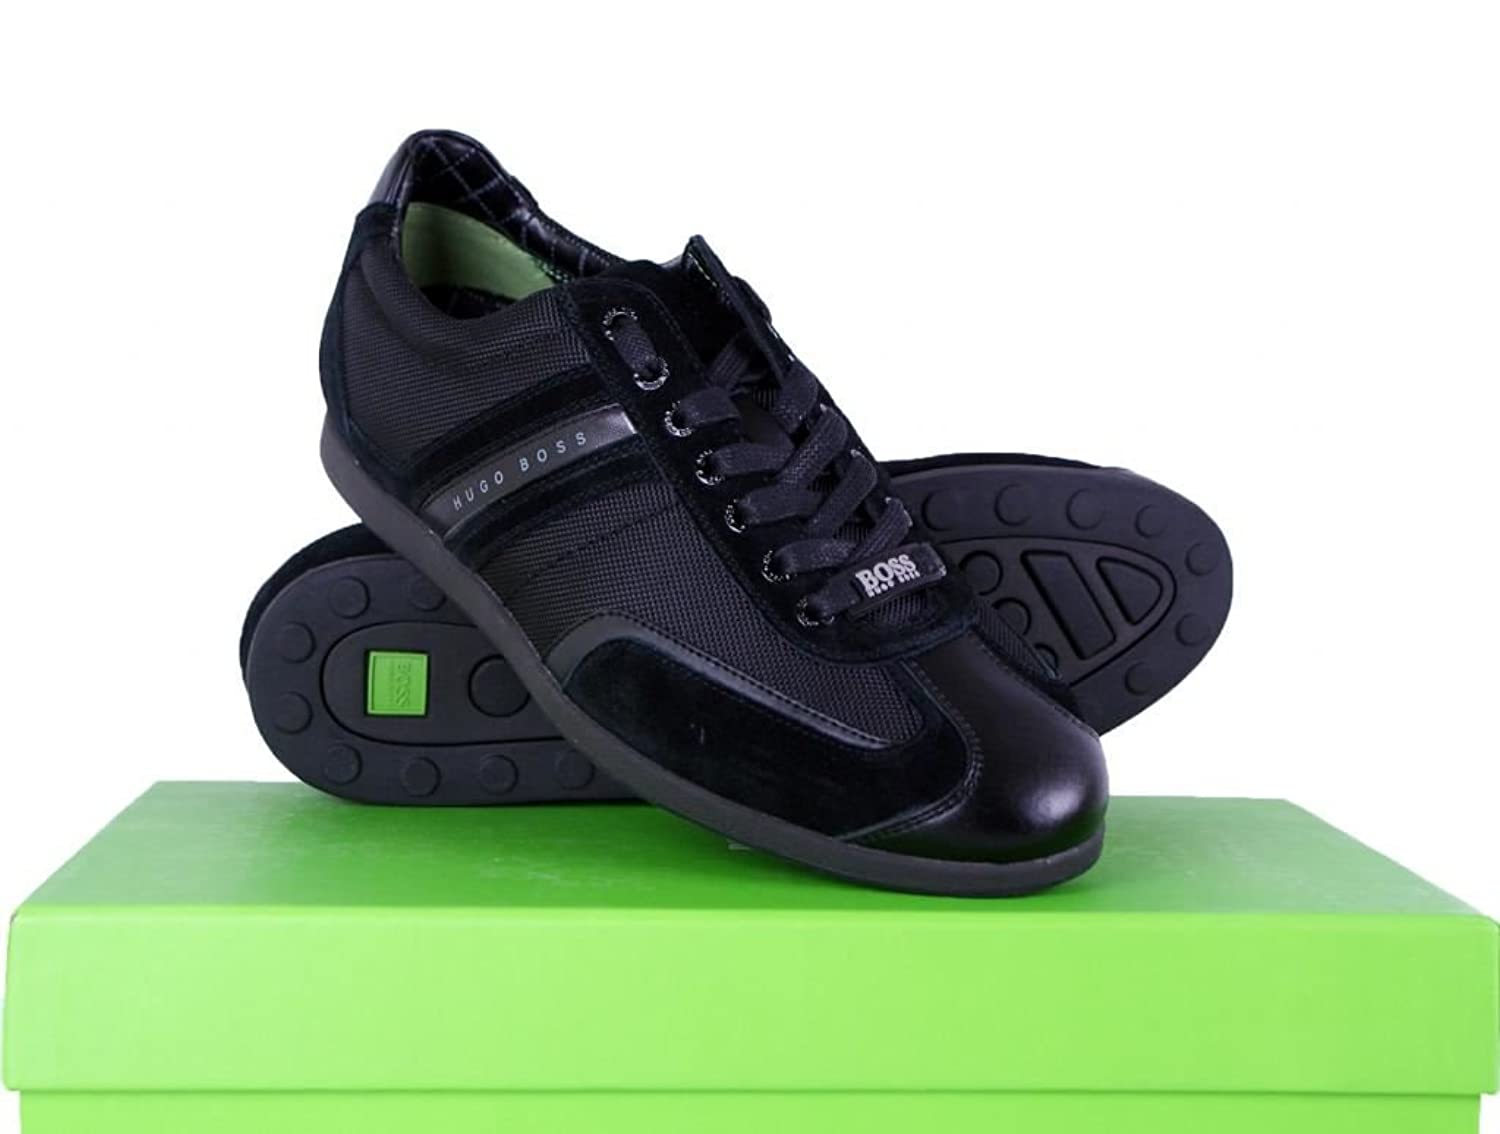 Hugo Boss Green Stiven Real Leather Sneakers Trainer Shoes in Black UK 10:  Amazon.co.uk: Shoes & Bags